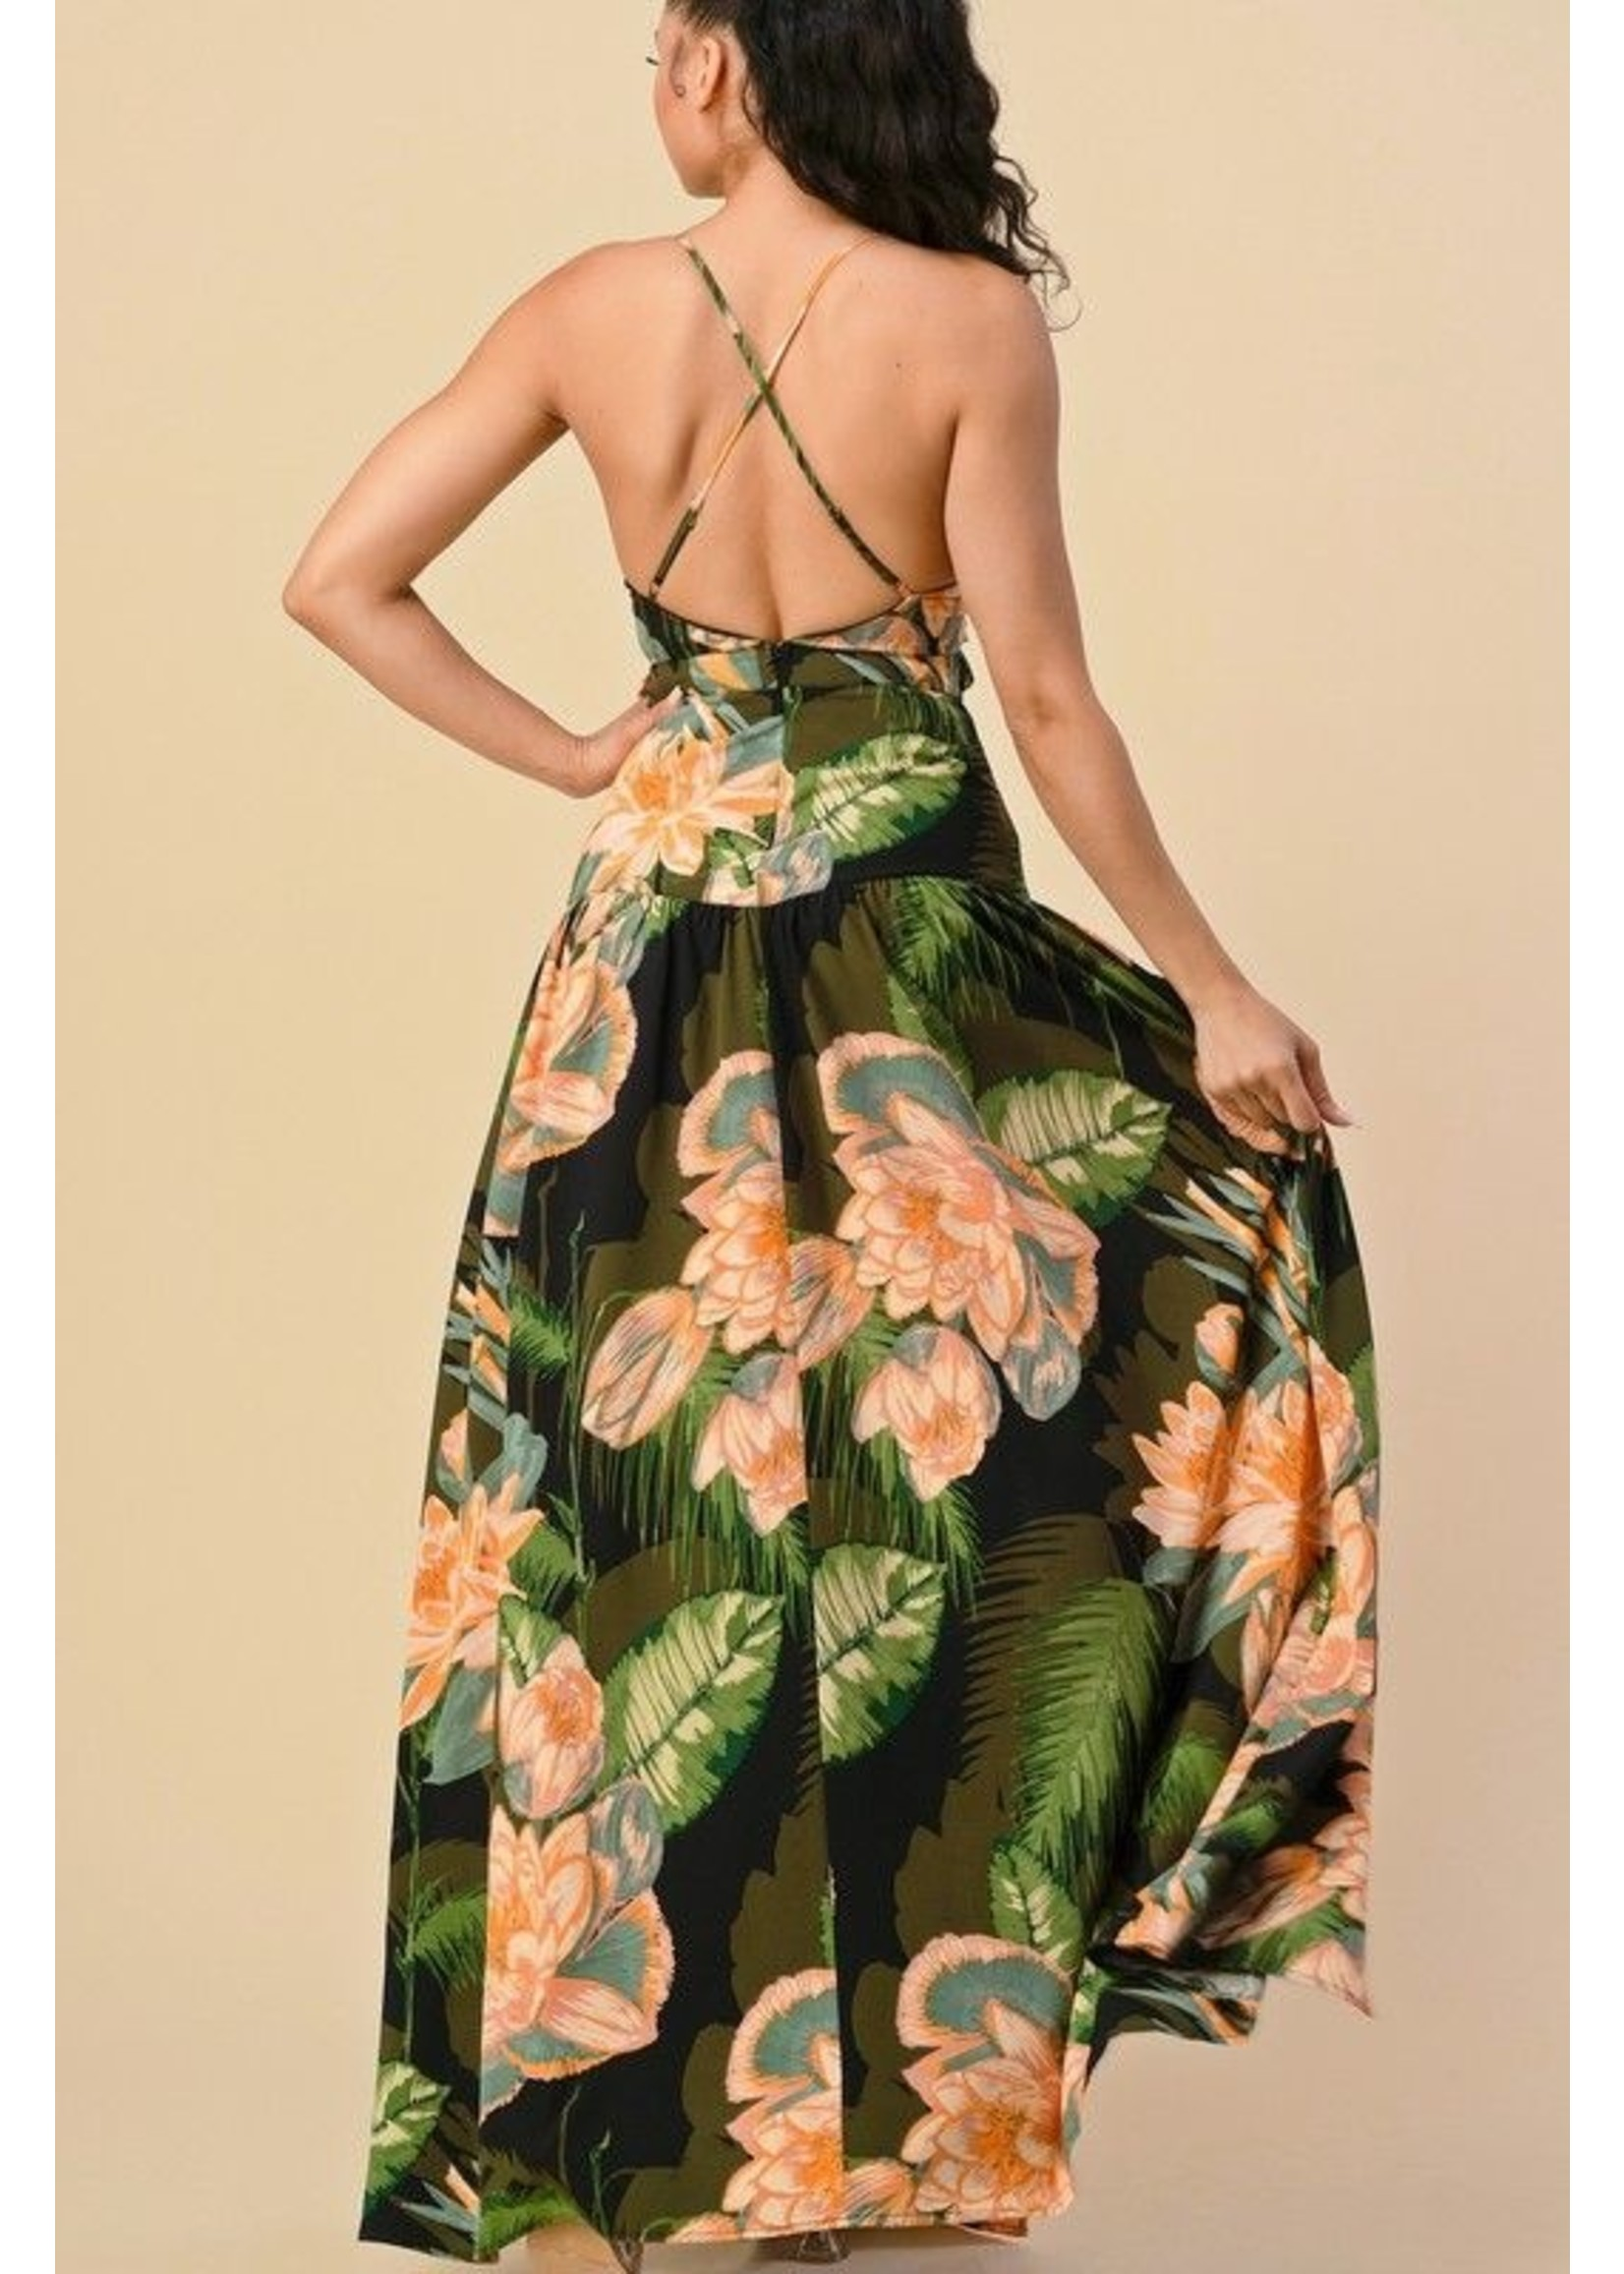 The Sang Clothing Queen of the Jungle Dress Green